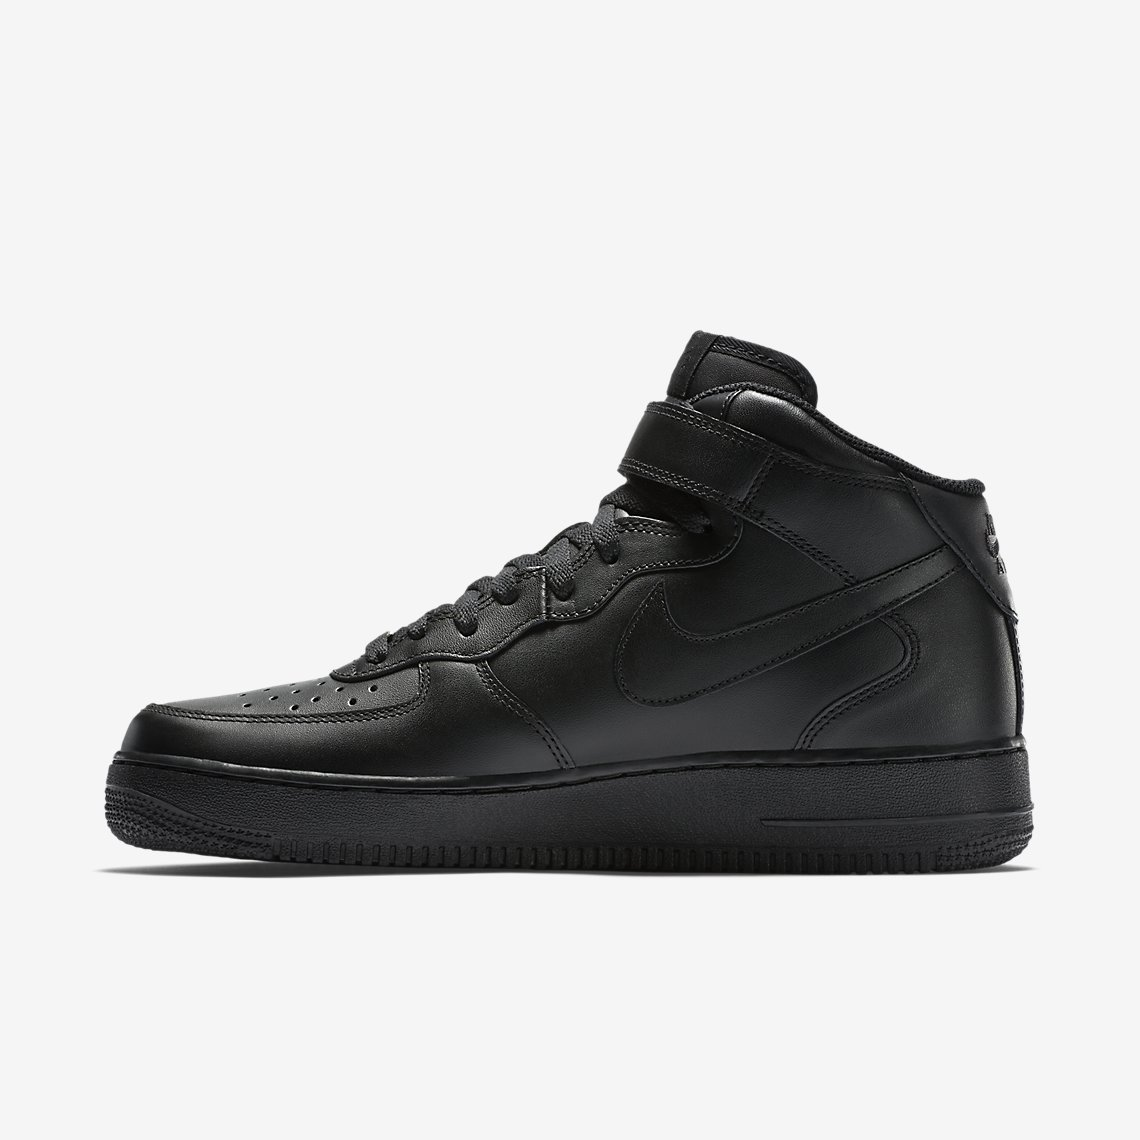 Nike Air Force 1 Mid '07 Mens Sneakers In Black 315123-001